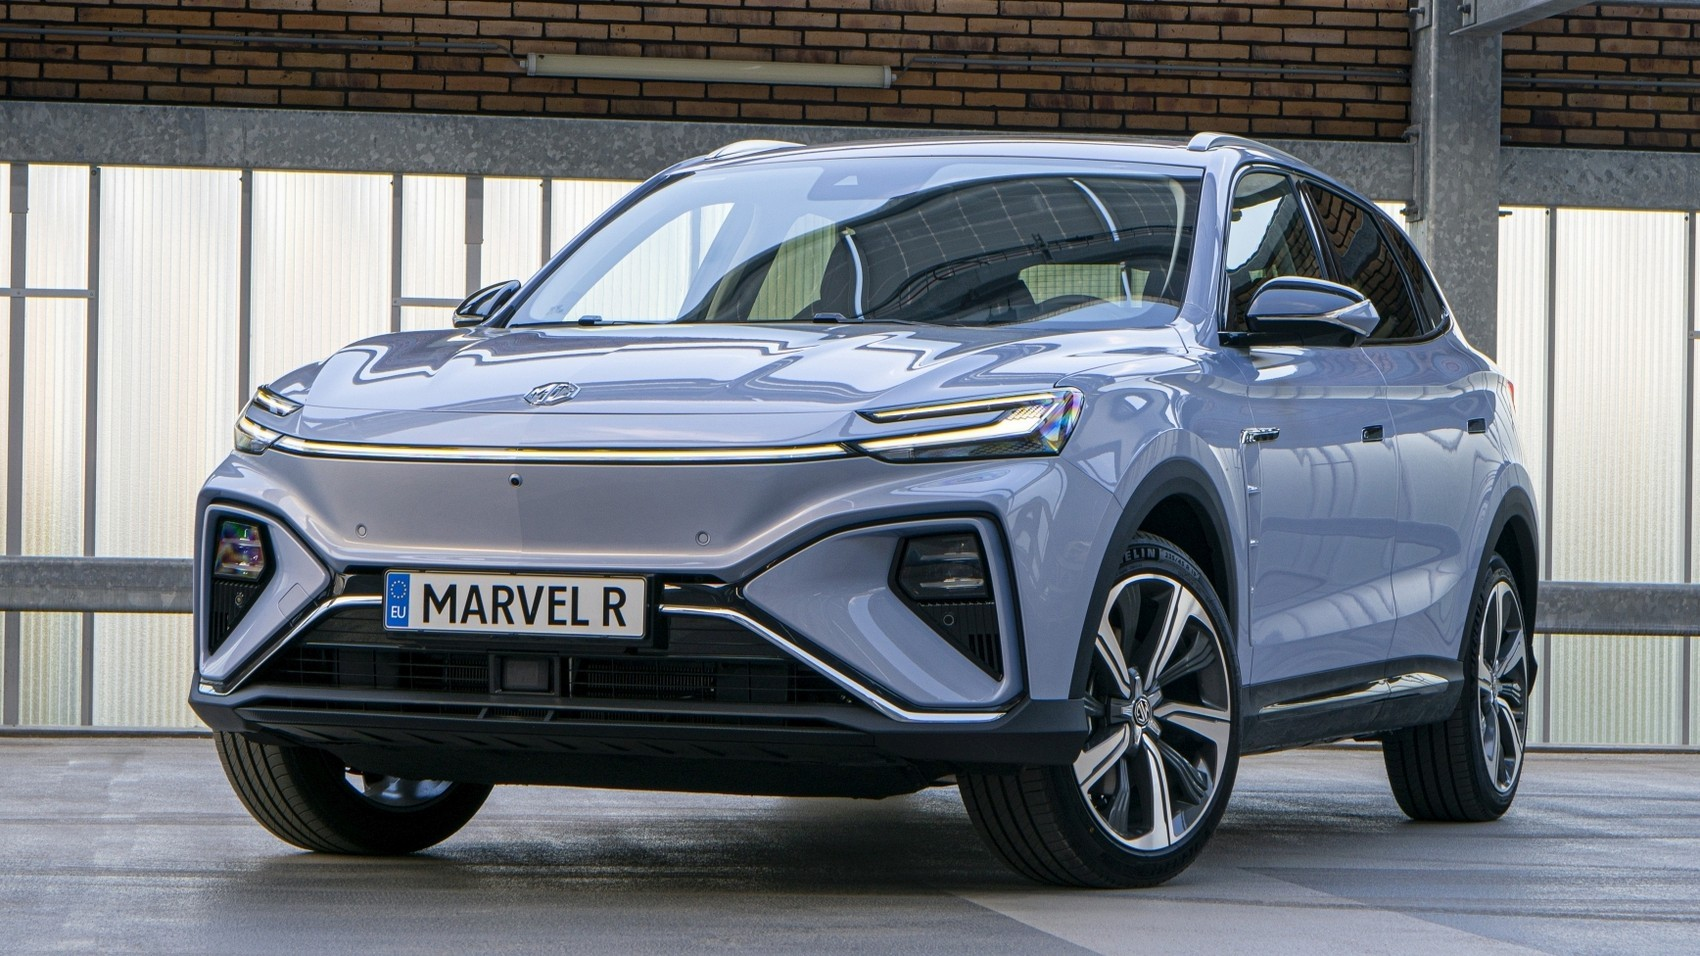 MG, a once-British car brand now owned by SAIC Group, has unveiled the battery-powered Marvel R SUV for Europe. There will be multiple modifications of it, and the top spec will sprint 0-100 km/h in under five seconds.